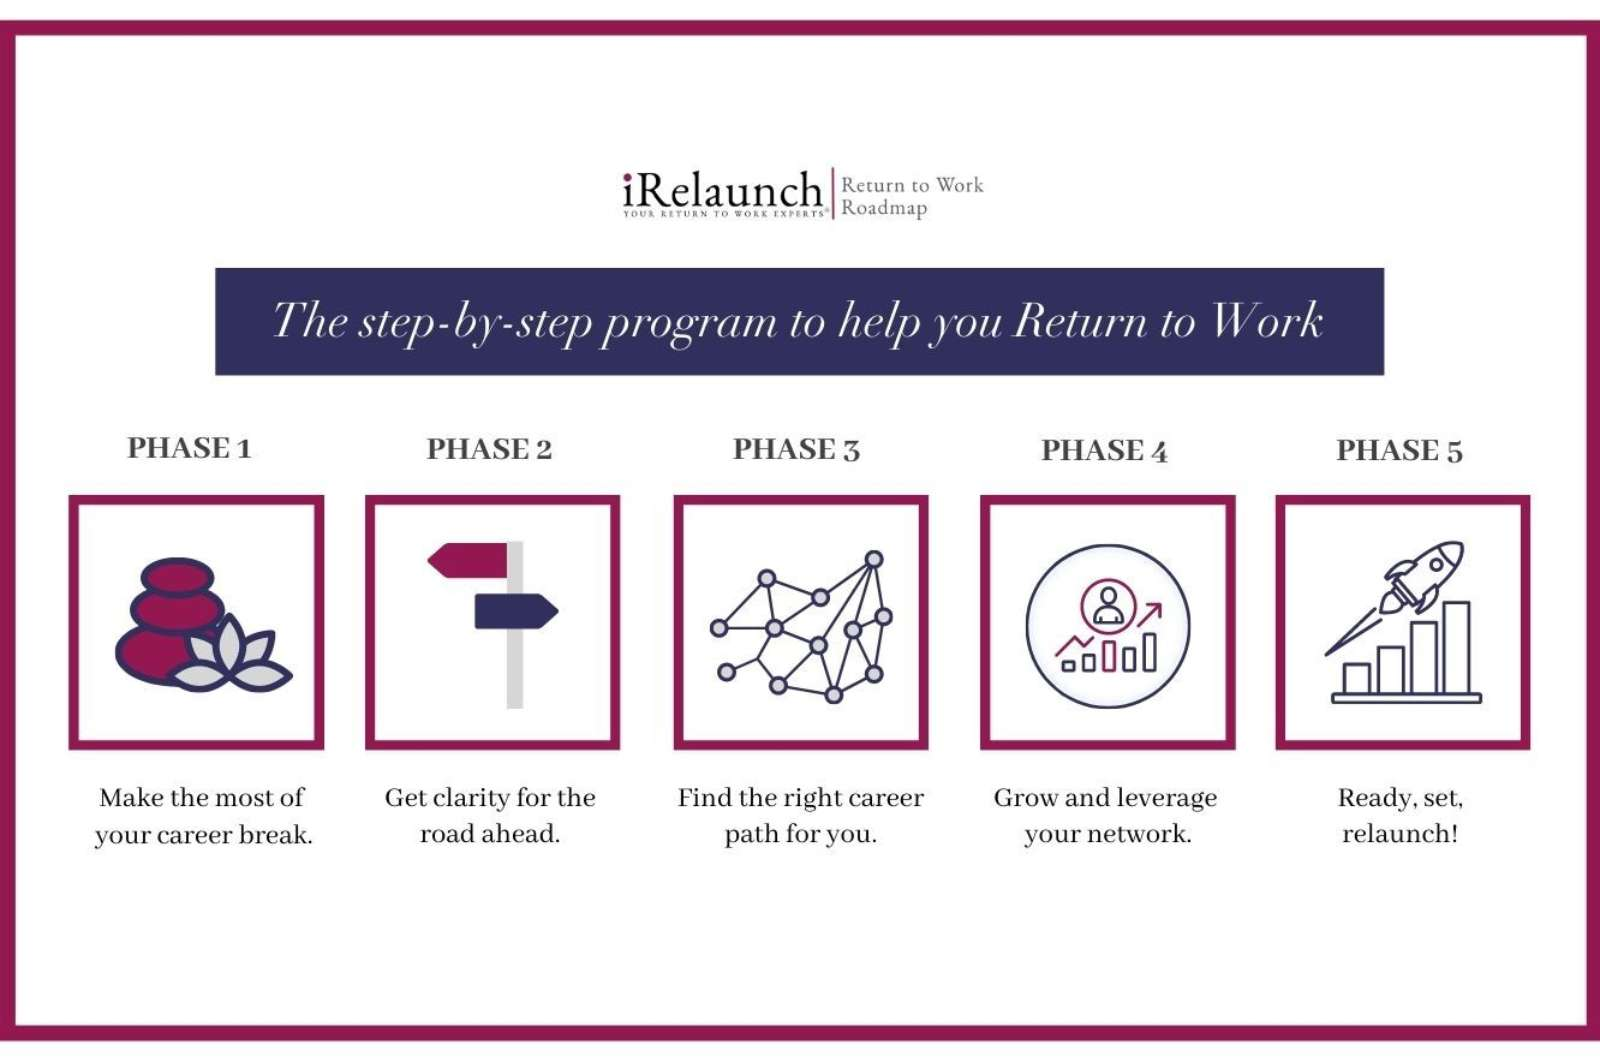 iRelaunch Return to Work Roadmap All Phases Graphic with Border stock